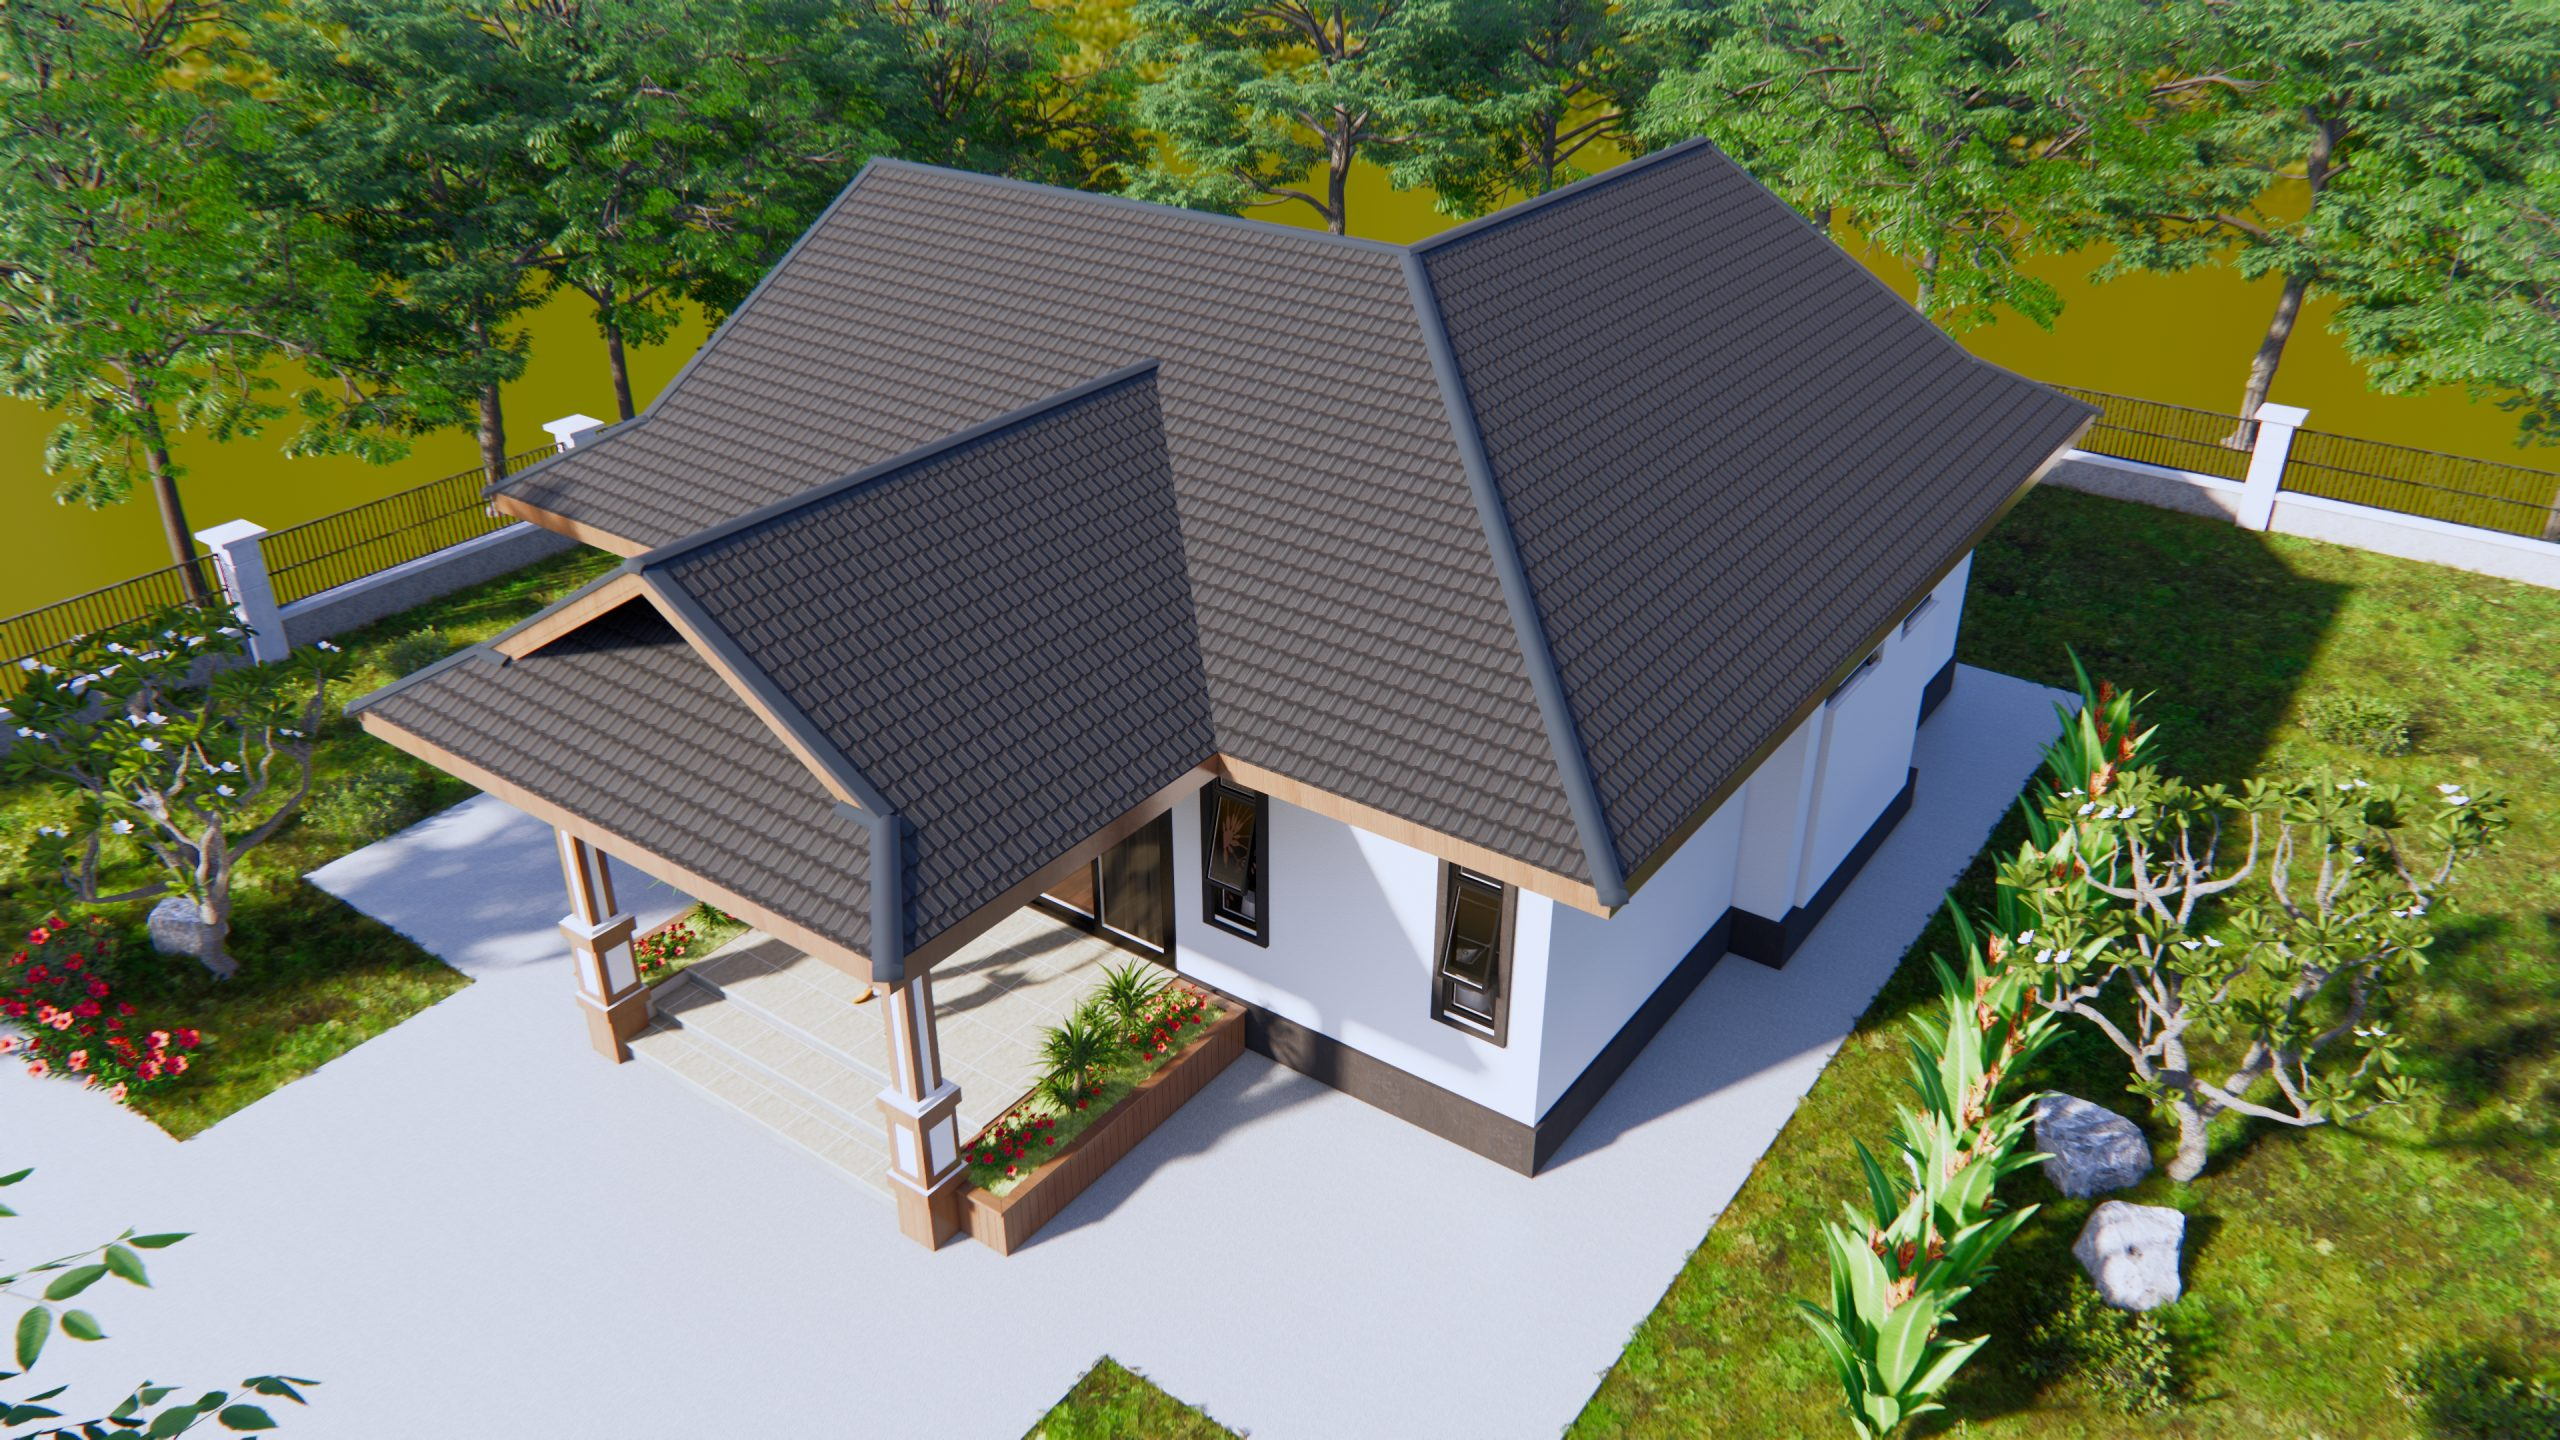 Cool Home Plans 11x14 Meters 36x46 Feet 3 Beds 3